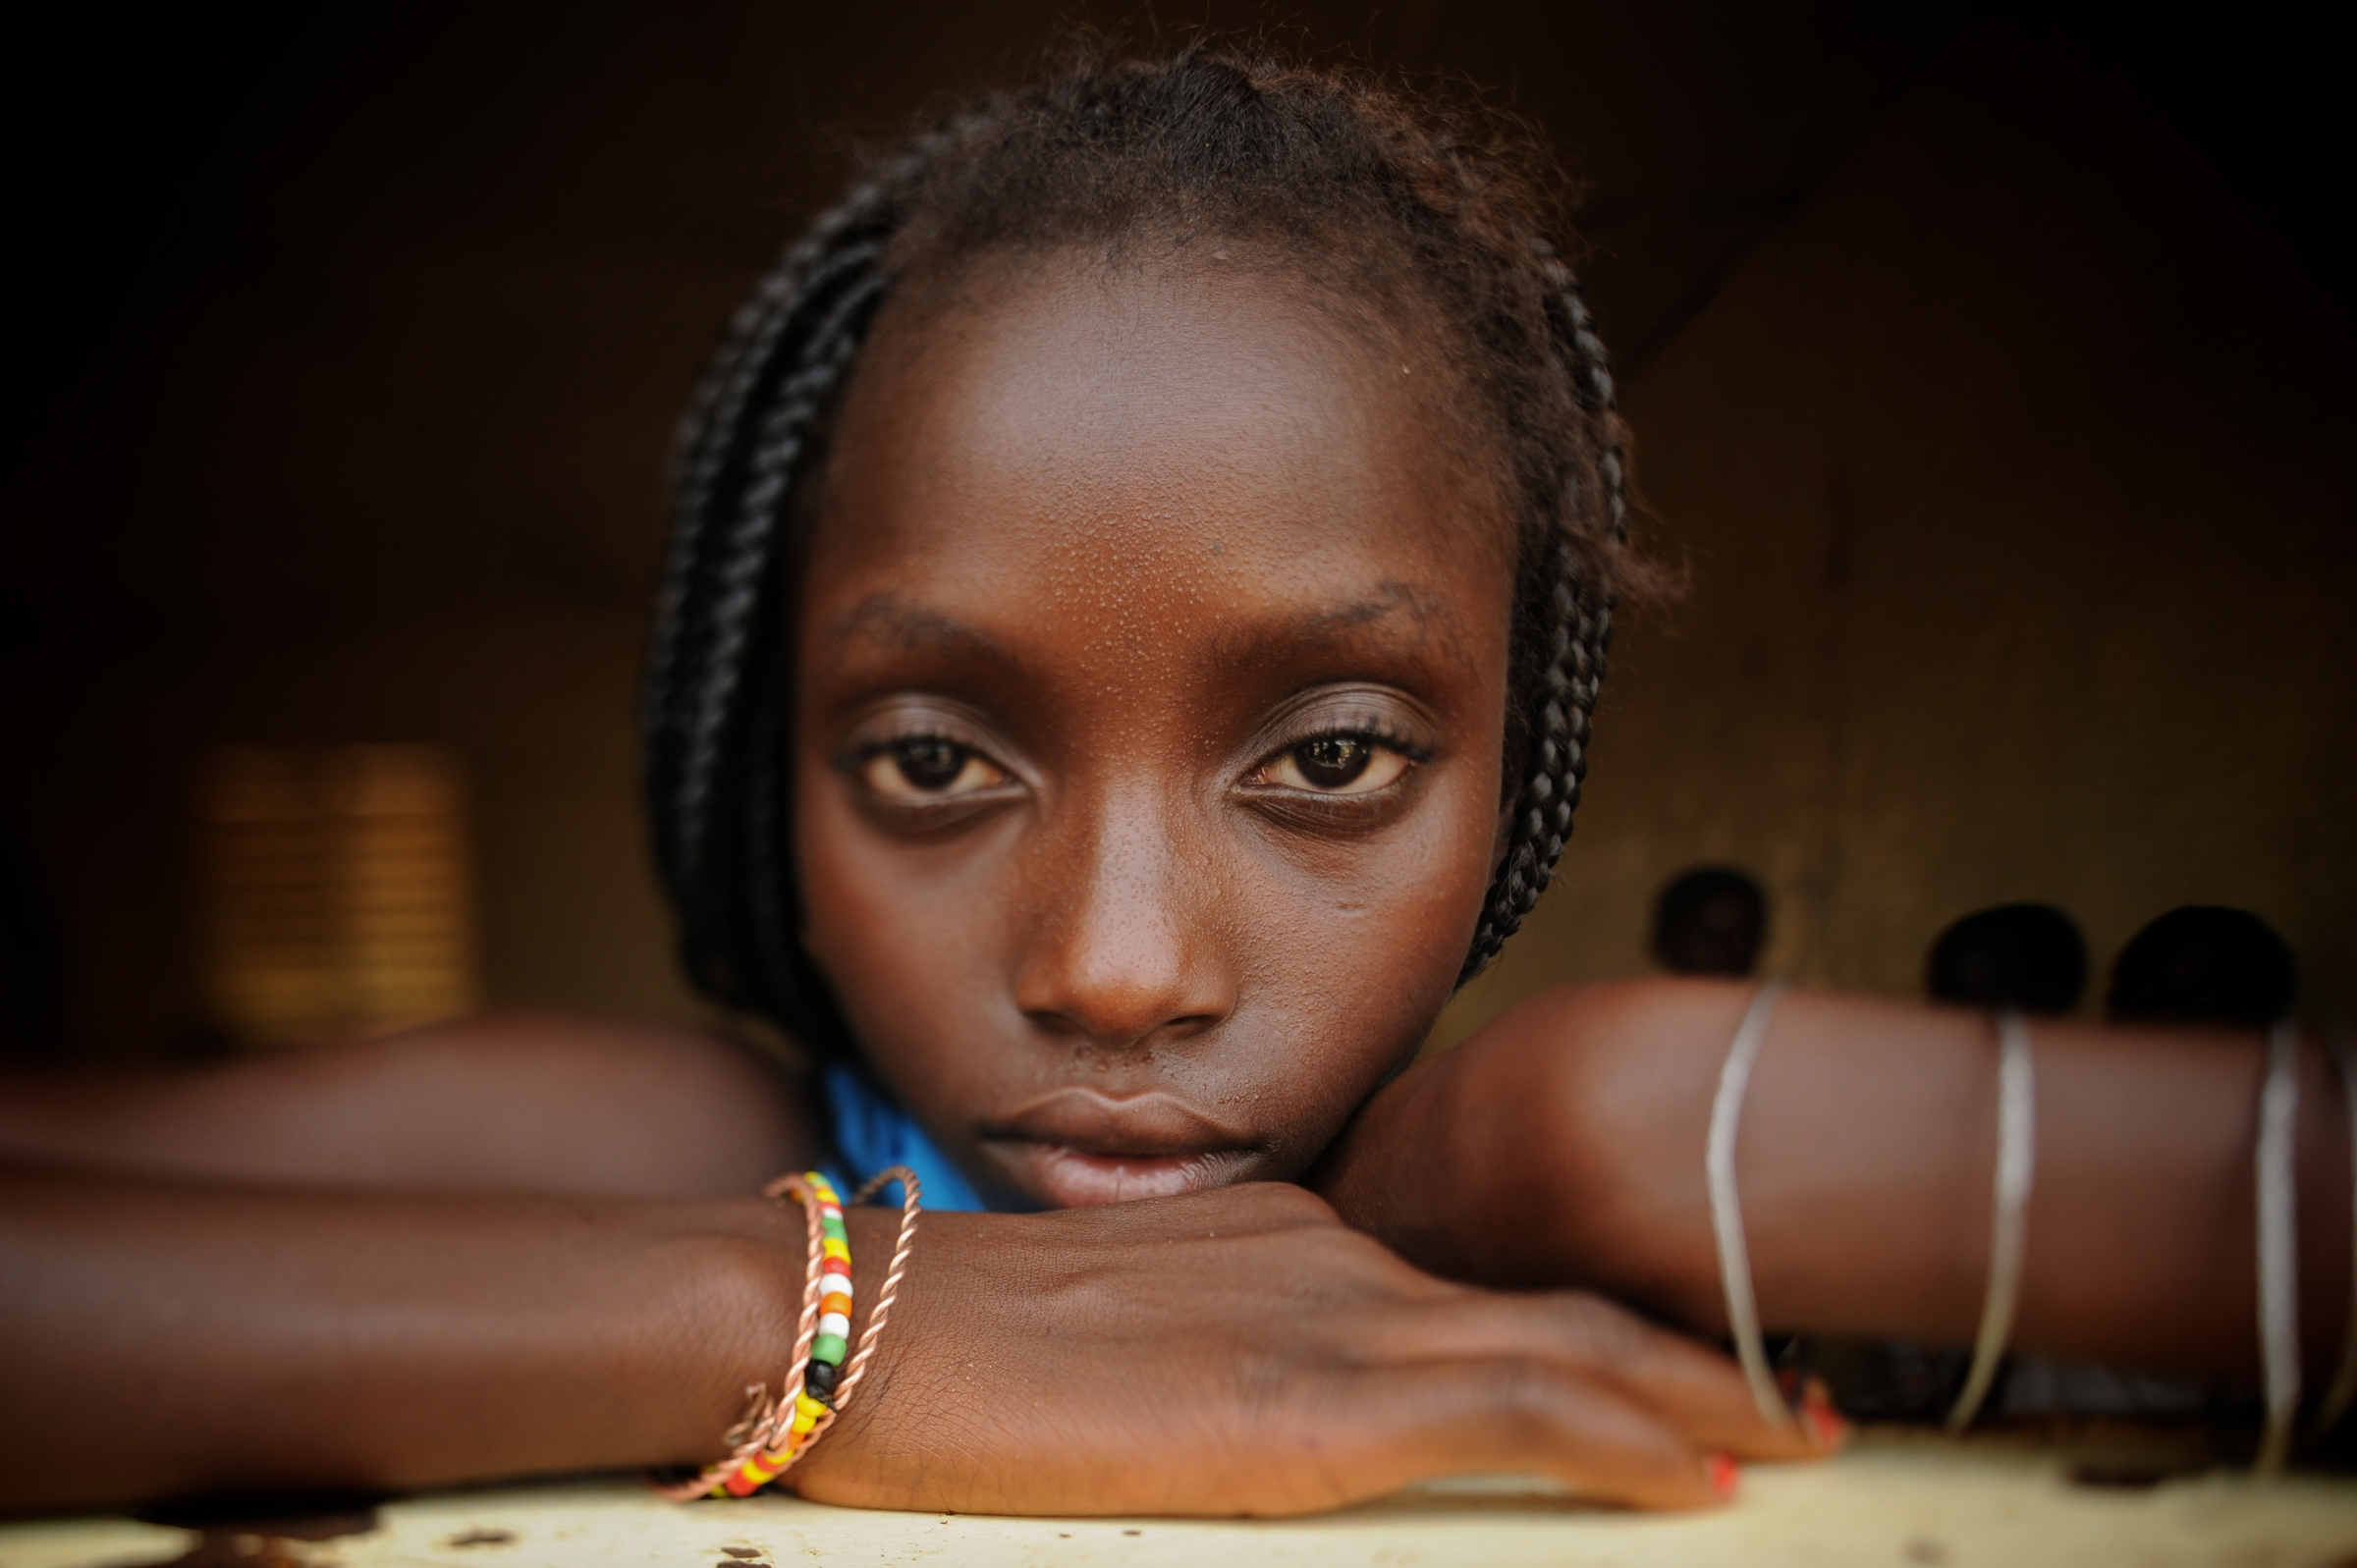 Jenabu Balde  rests her head inside the school in the remote village of Dembel Jumpora in Guinea Bissuau. A similar image was misappropriated by the  #bringbackourgirls  campaign. Guinea Bissau 2011   © Ami Vitale